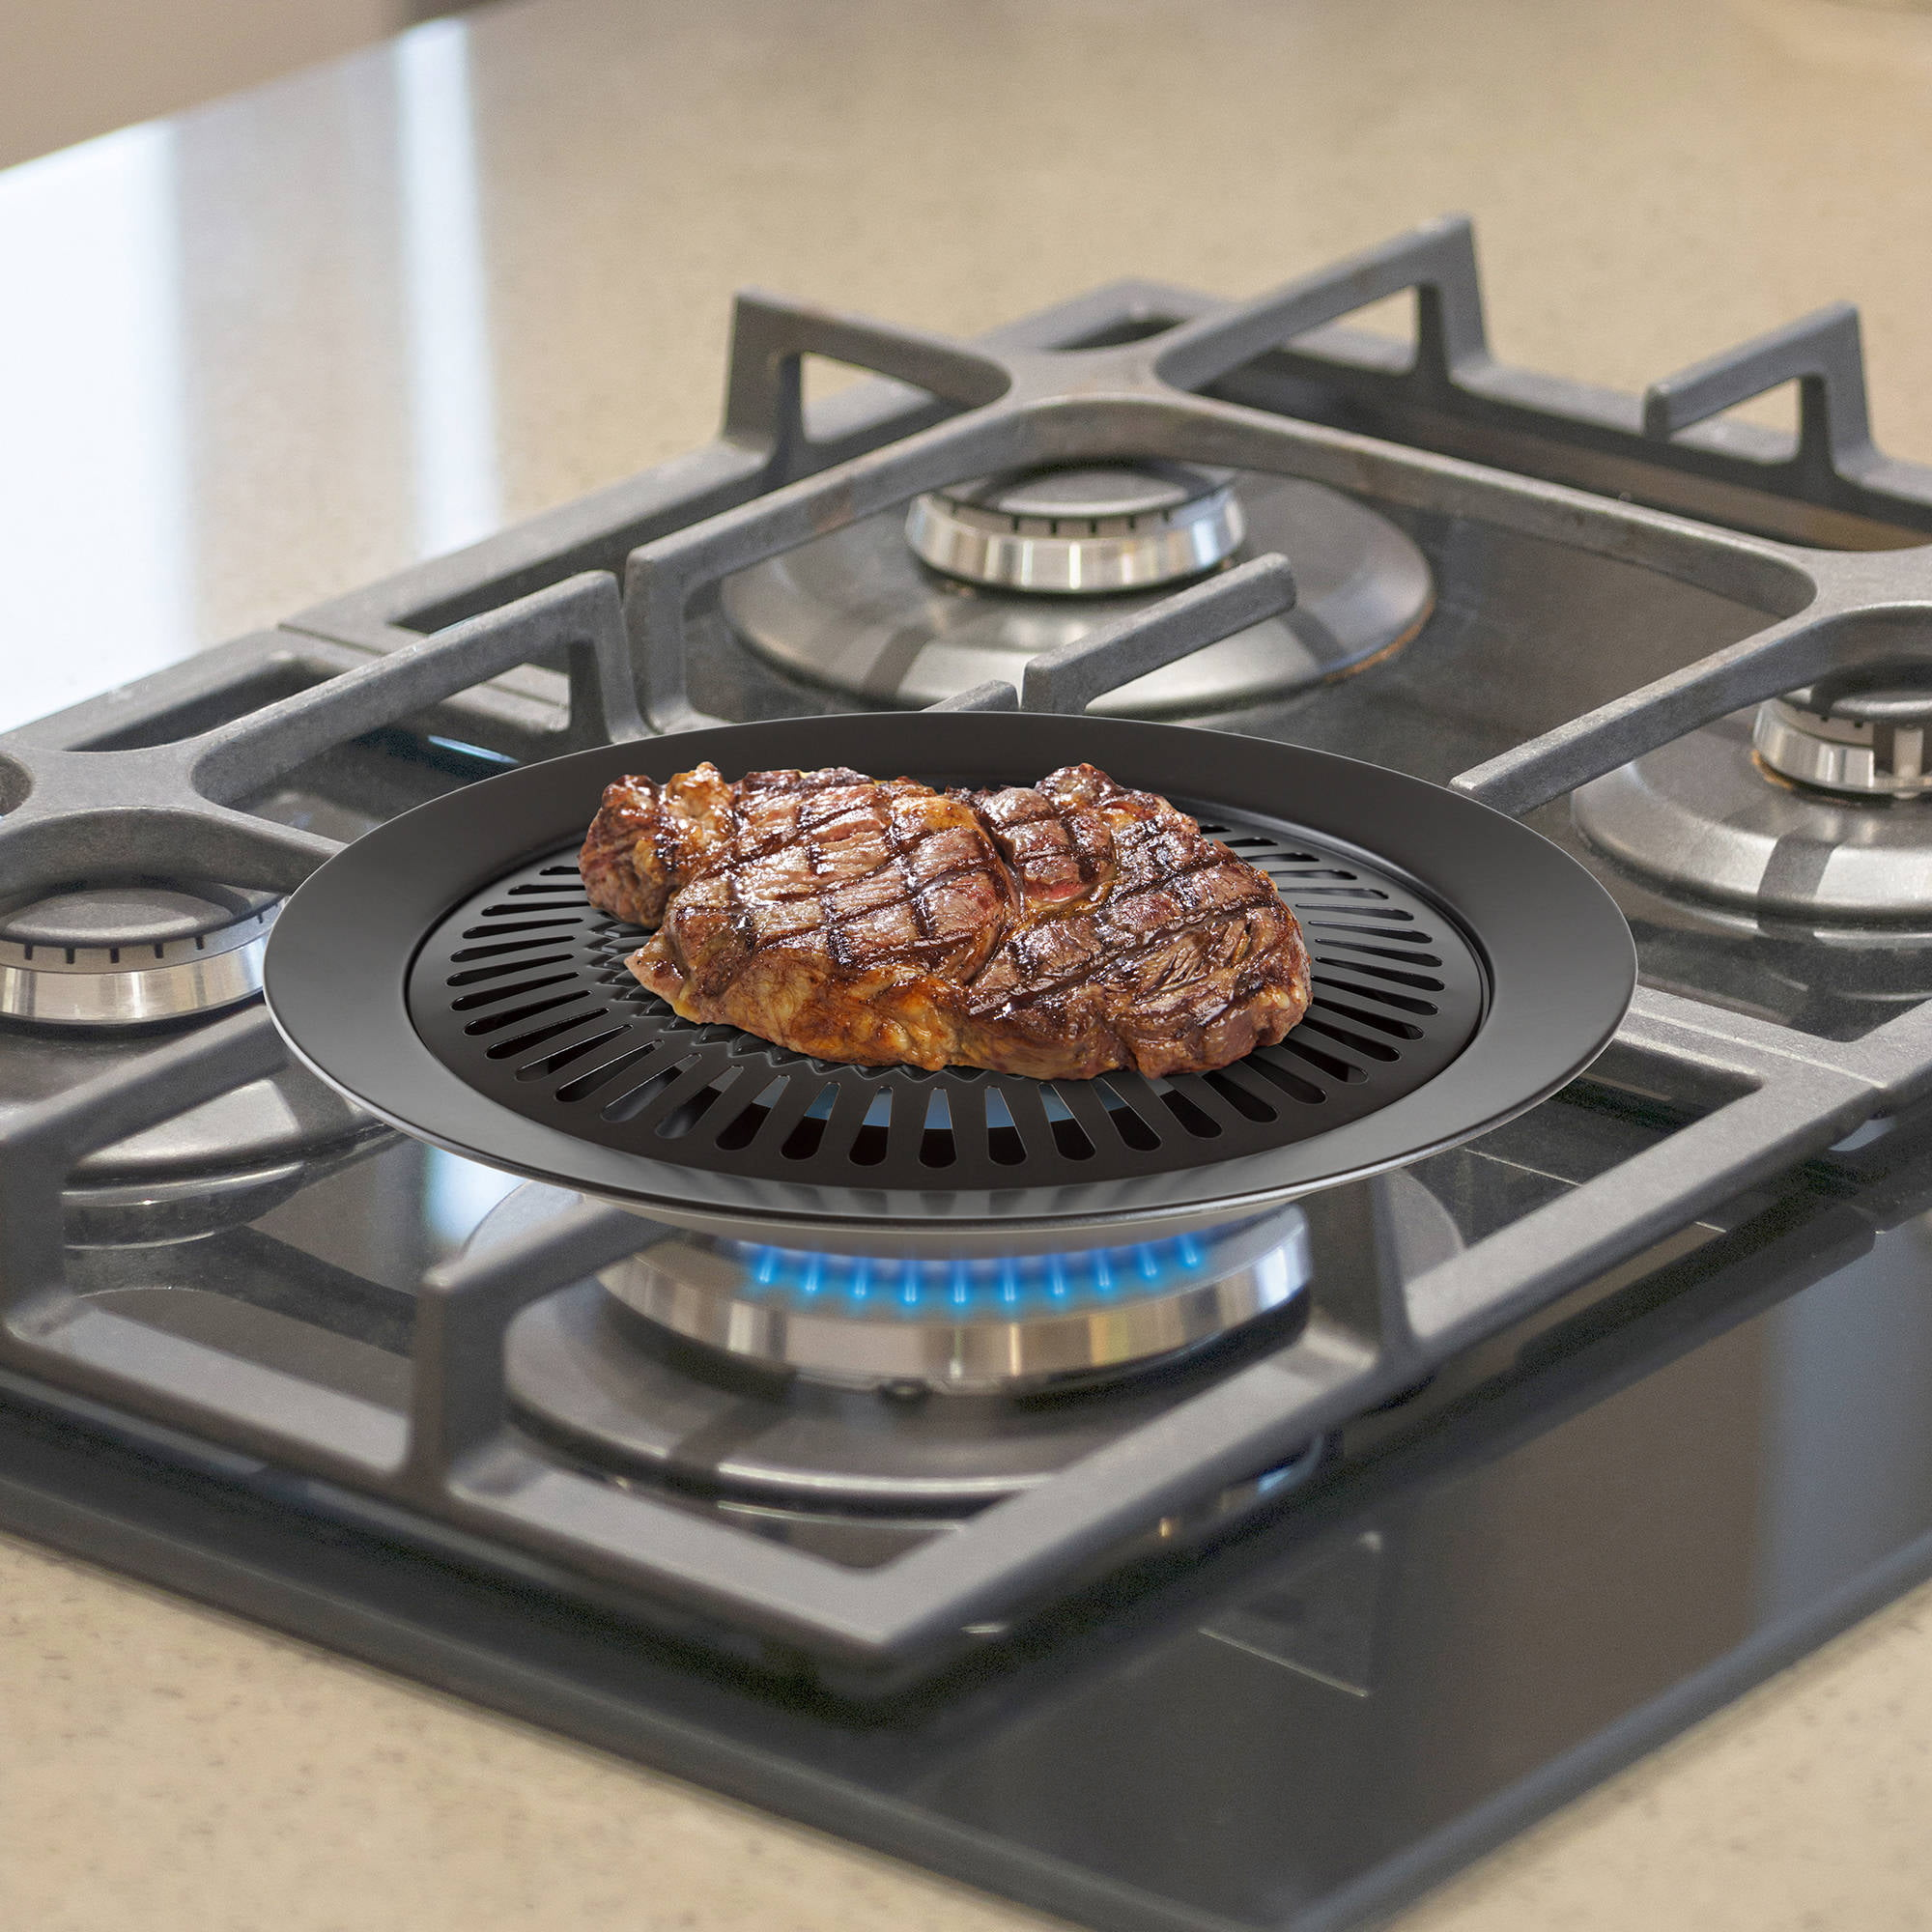 Chef Buddy Smokeless Indoor Stove Top Grill by Trademark Global LLC